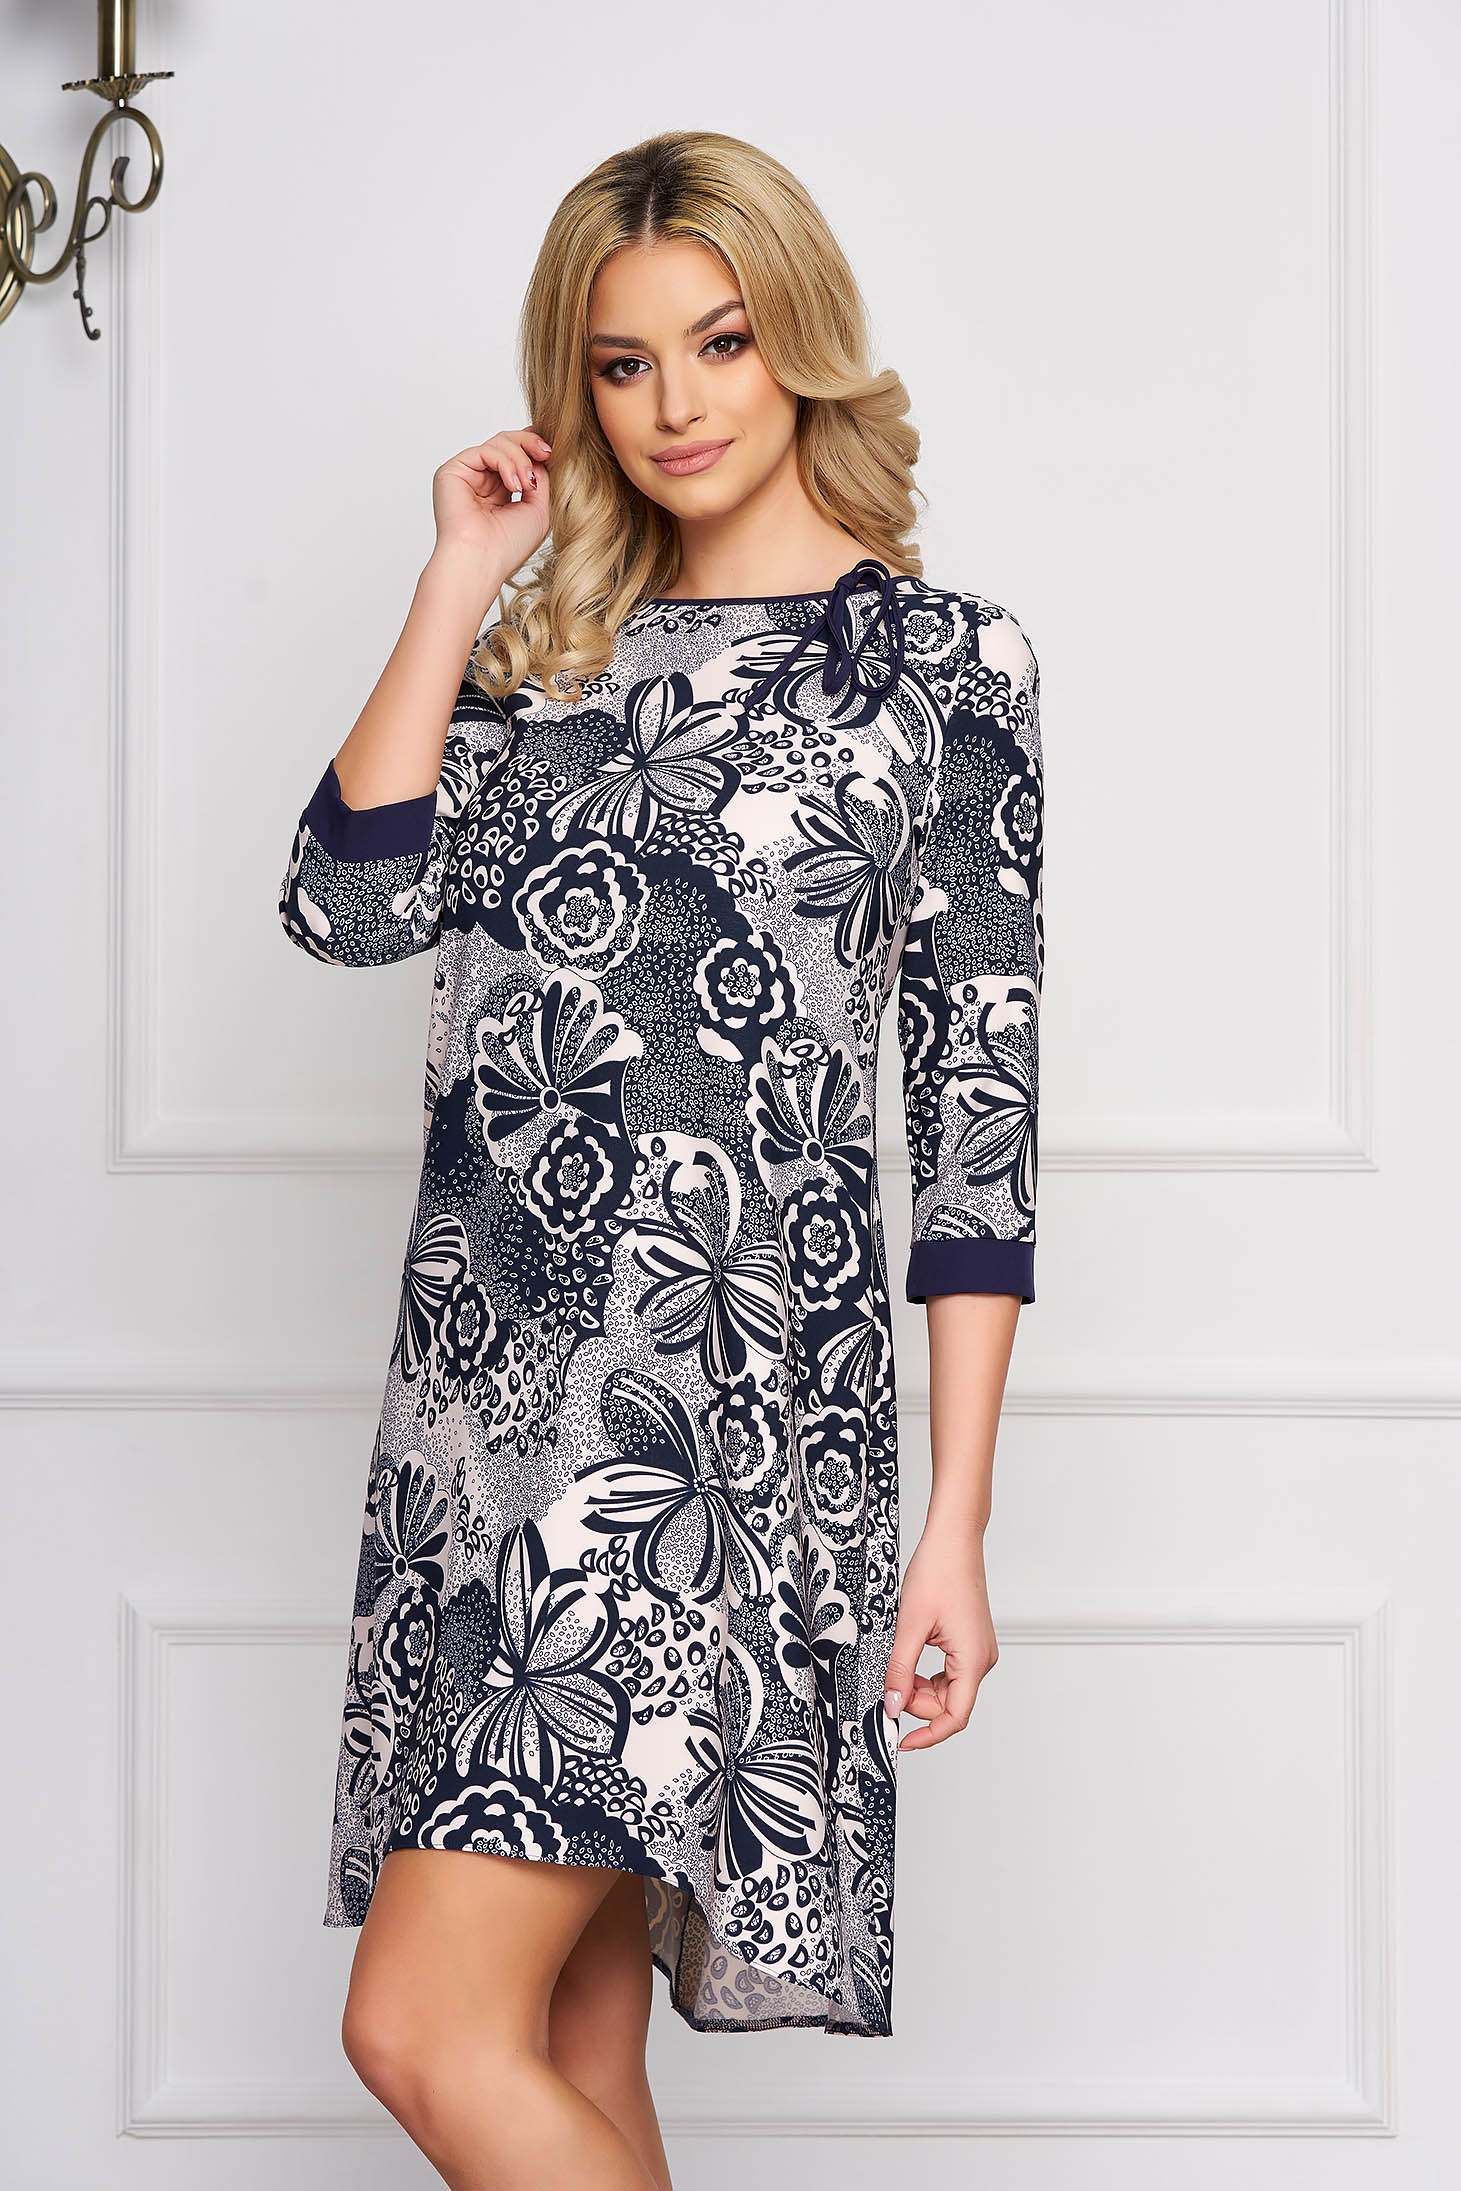 StarShinerS darkblue dress daily scuba with 3/4 sleeves bow accessory without clothing